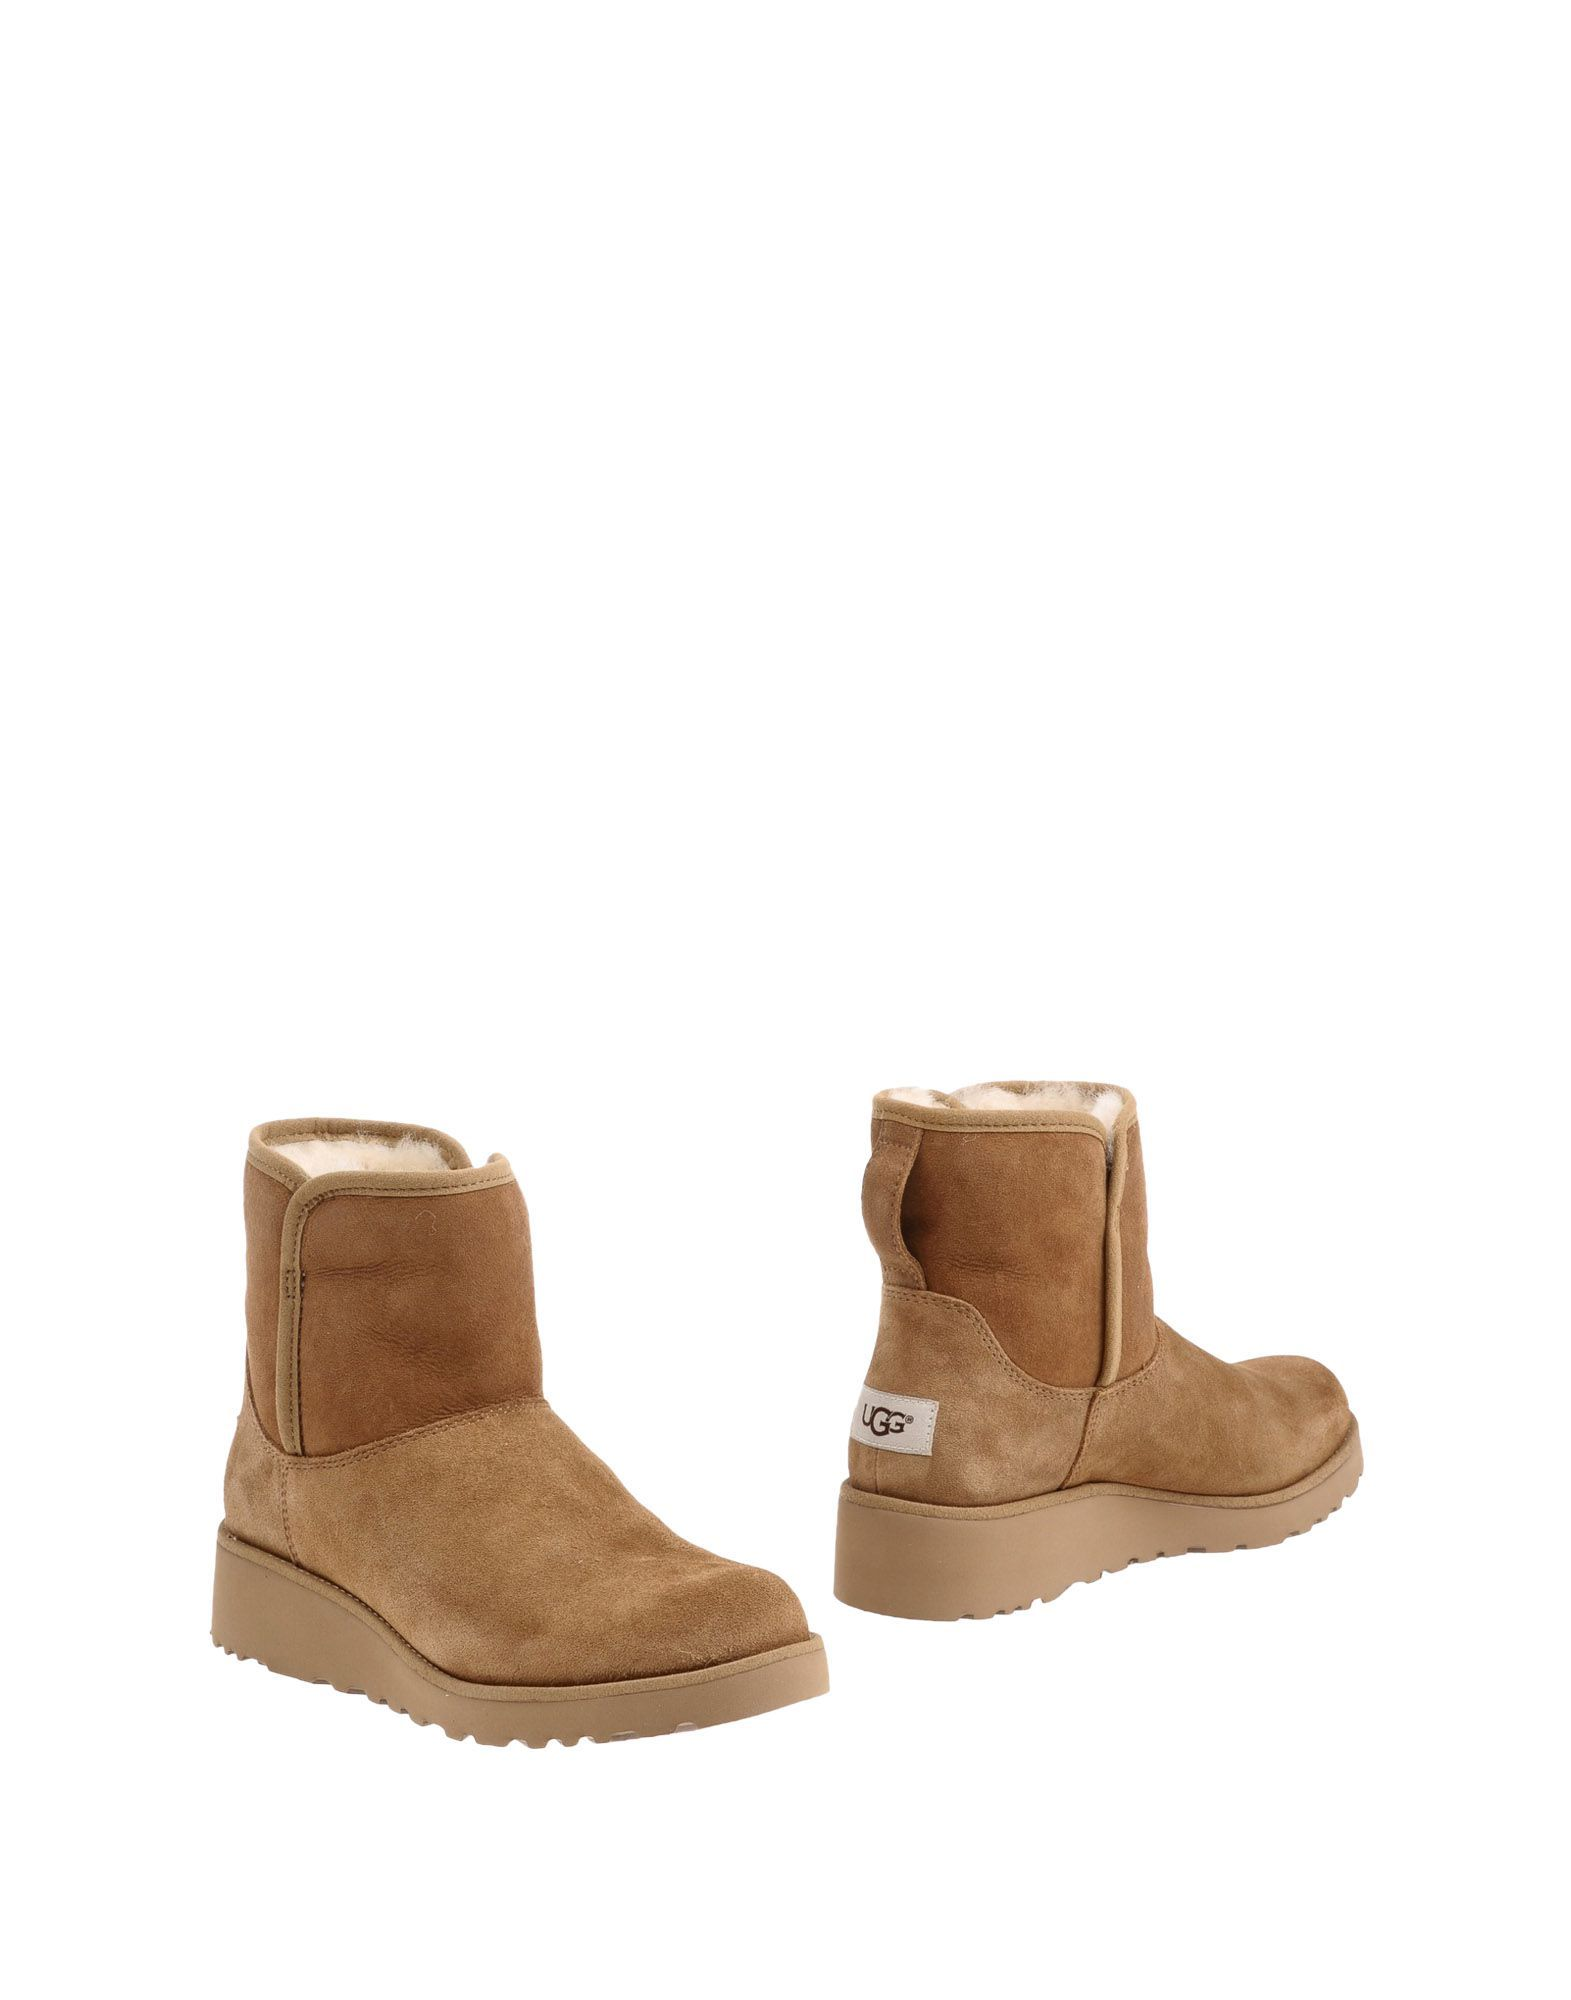 Ugg Australia Camel Leather Boots